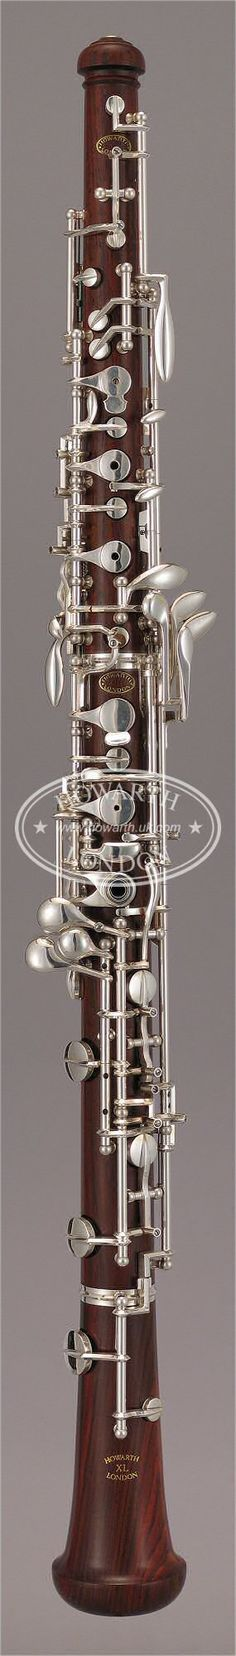 Oboe of dreams. Only 7.5K!    ^lulz 7.5k on my cushy musician's salary OF COURSE